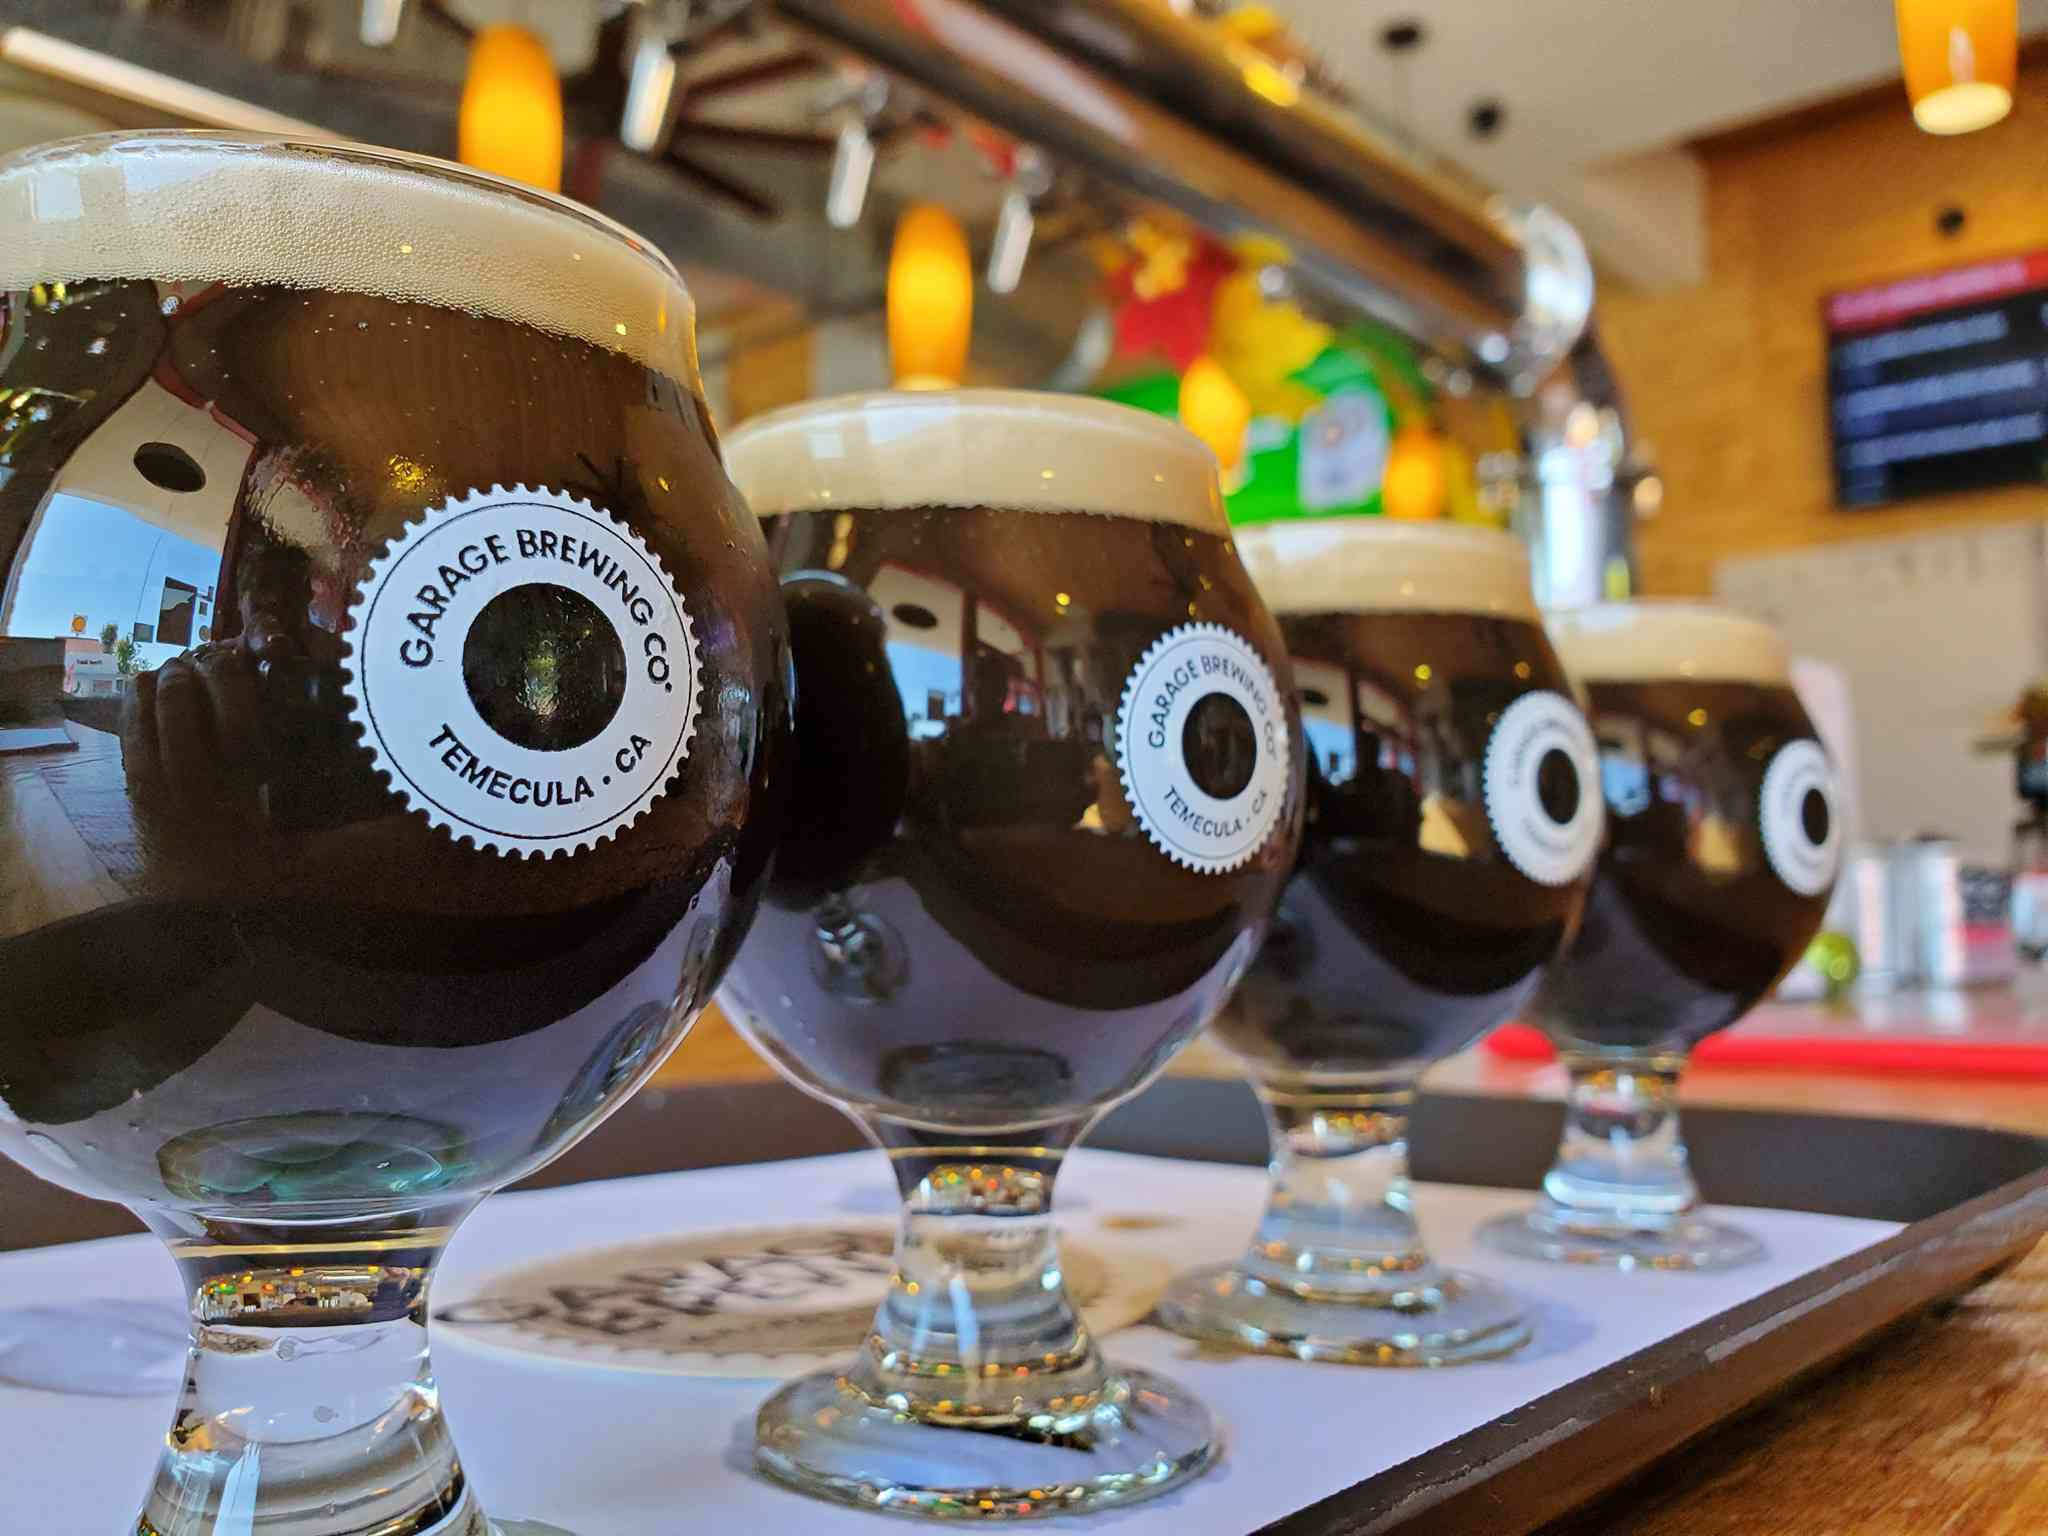 Four dark stout beers on a tray